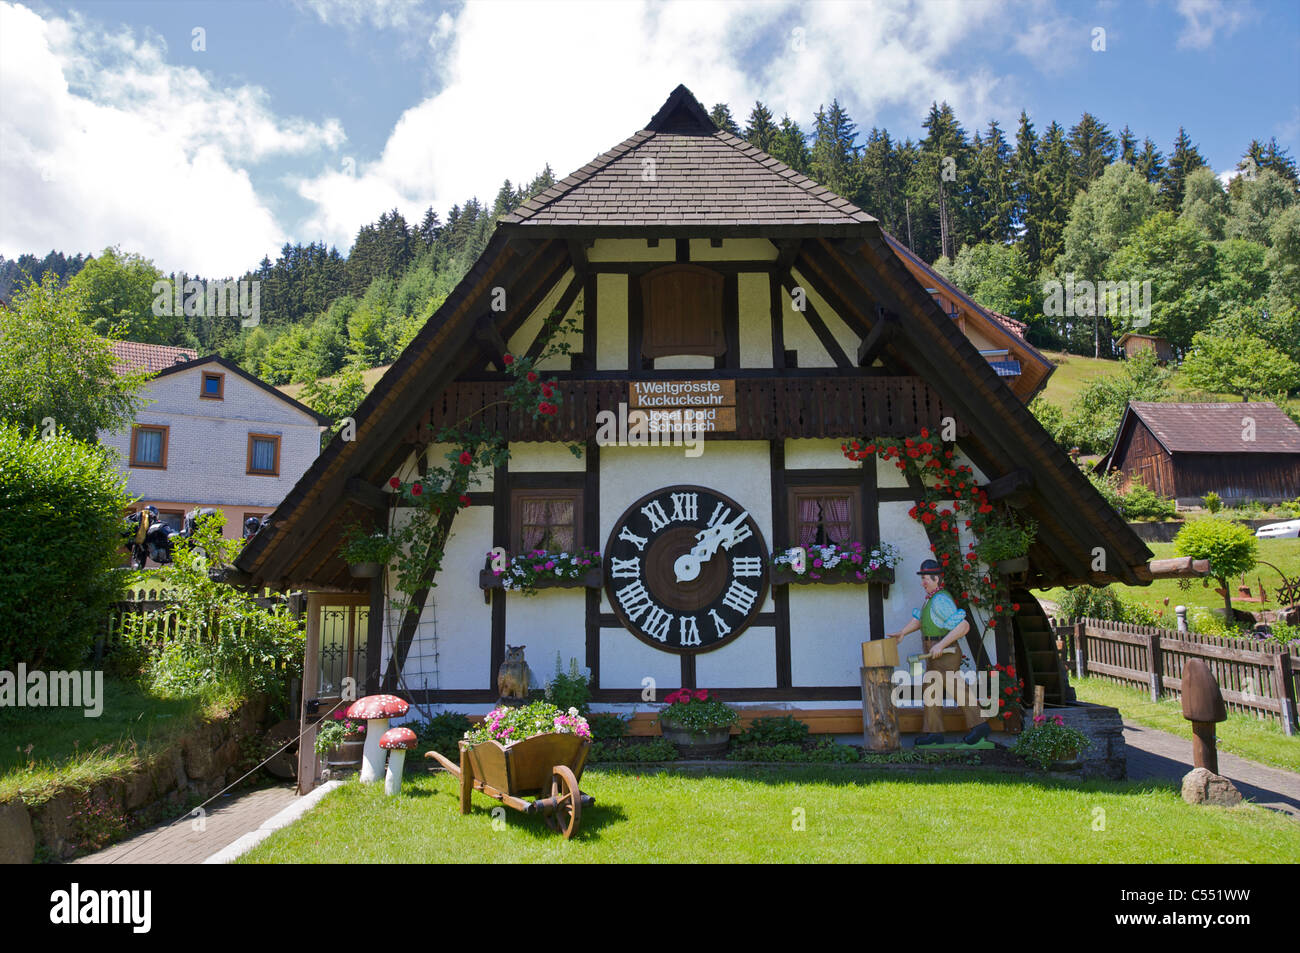 weltweit gr te kuckucksuhr in schonach im schwarzwald baden w rttemberg deutschland stockfoto. Black Bedroom Furniture Sets. Home Design Ideas